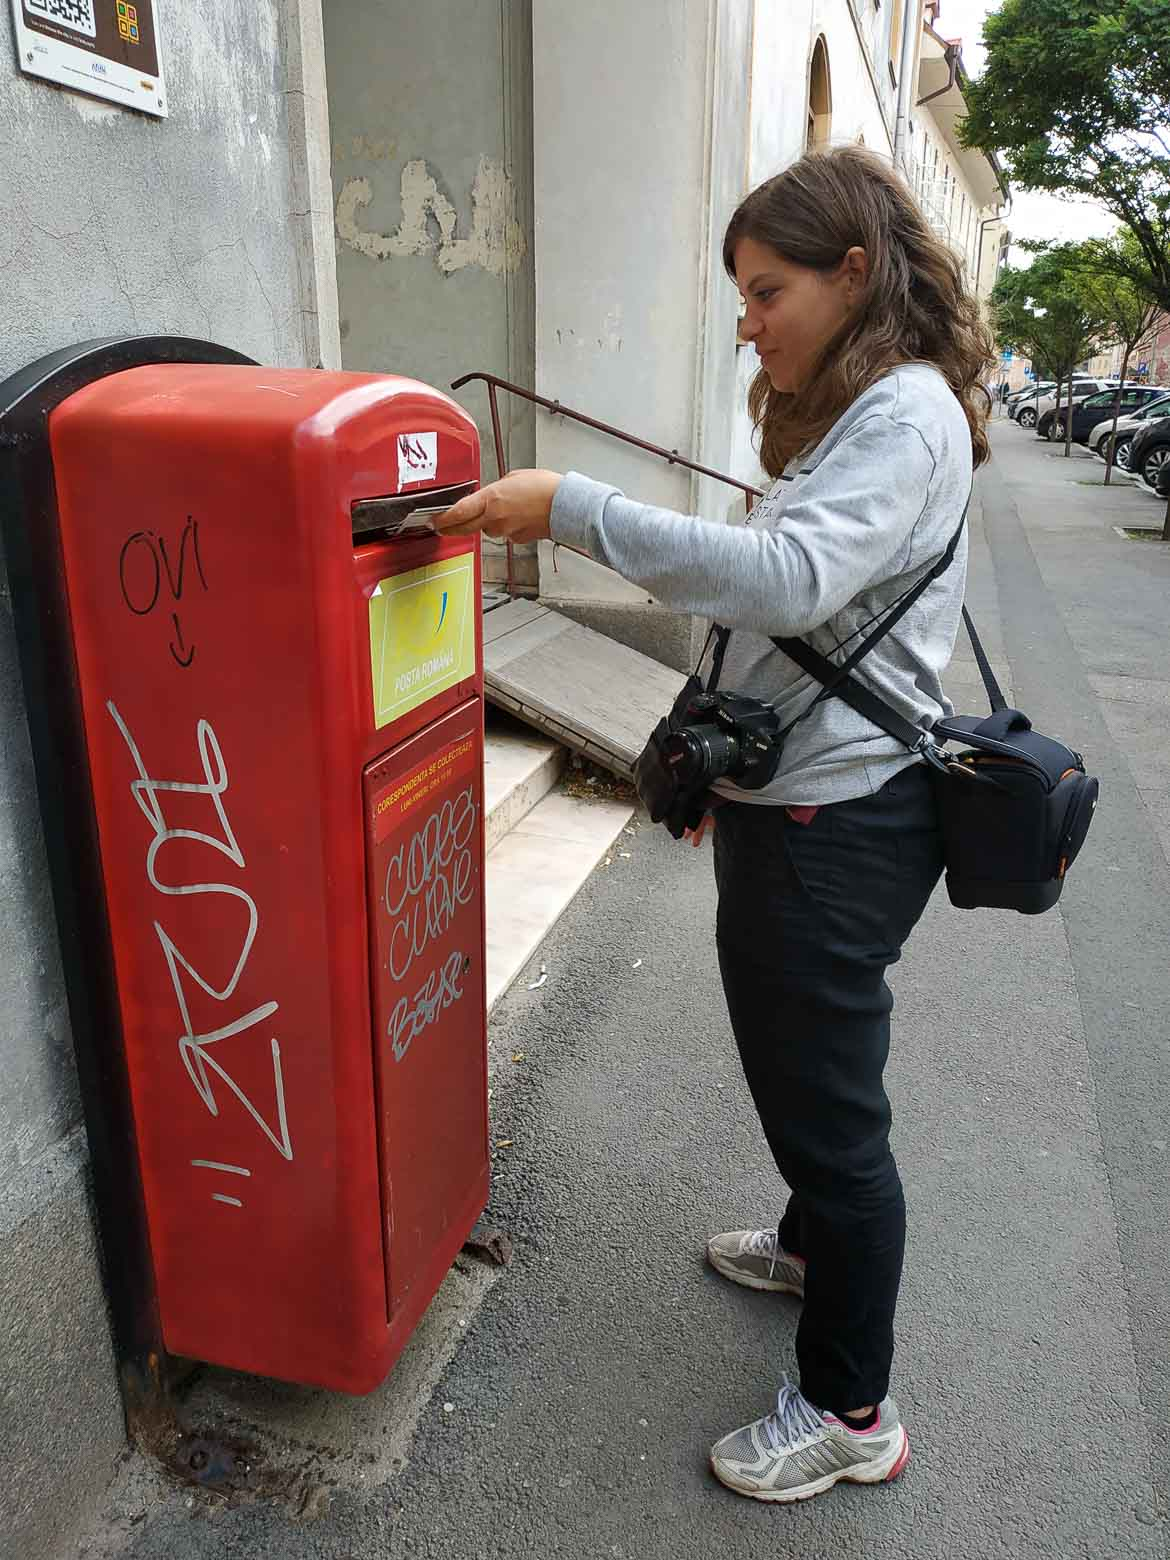 This is a photo showing Katerina mailing postcards from Sibiu, Transylvania, Romania. We always stay in contact with our loved ones while travelling. It's all trip to me travel blog.